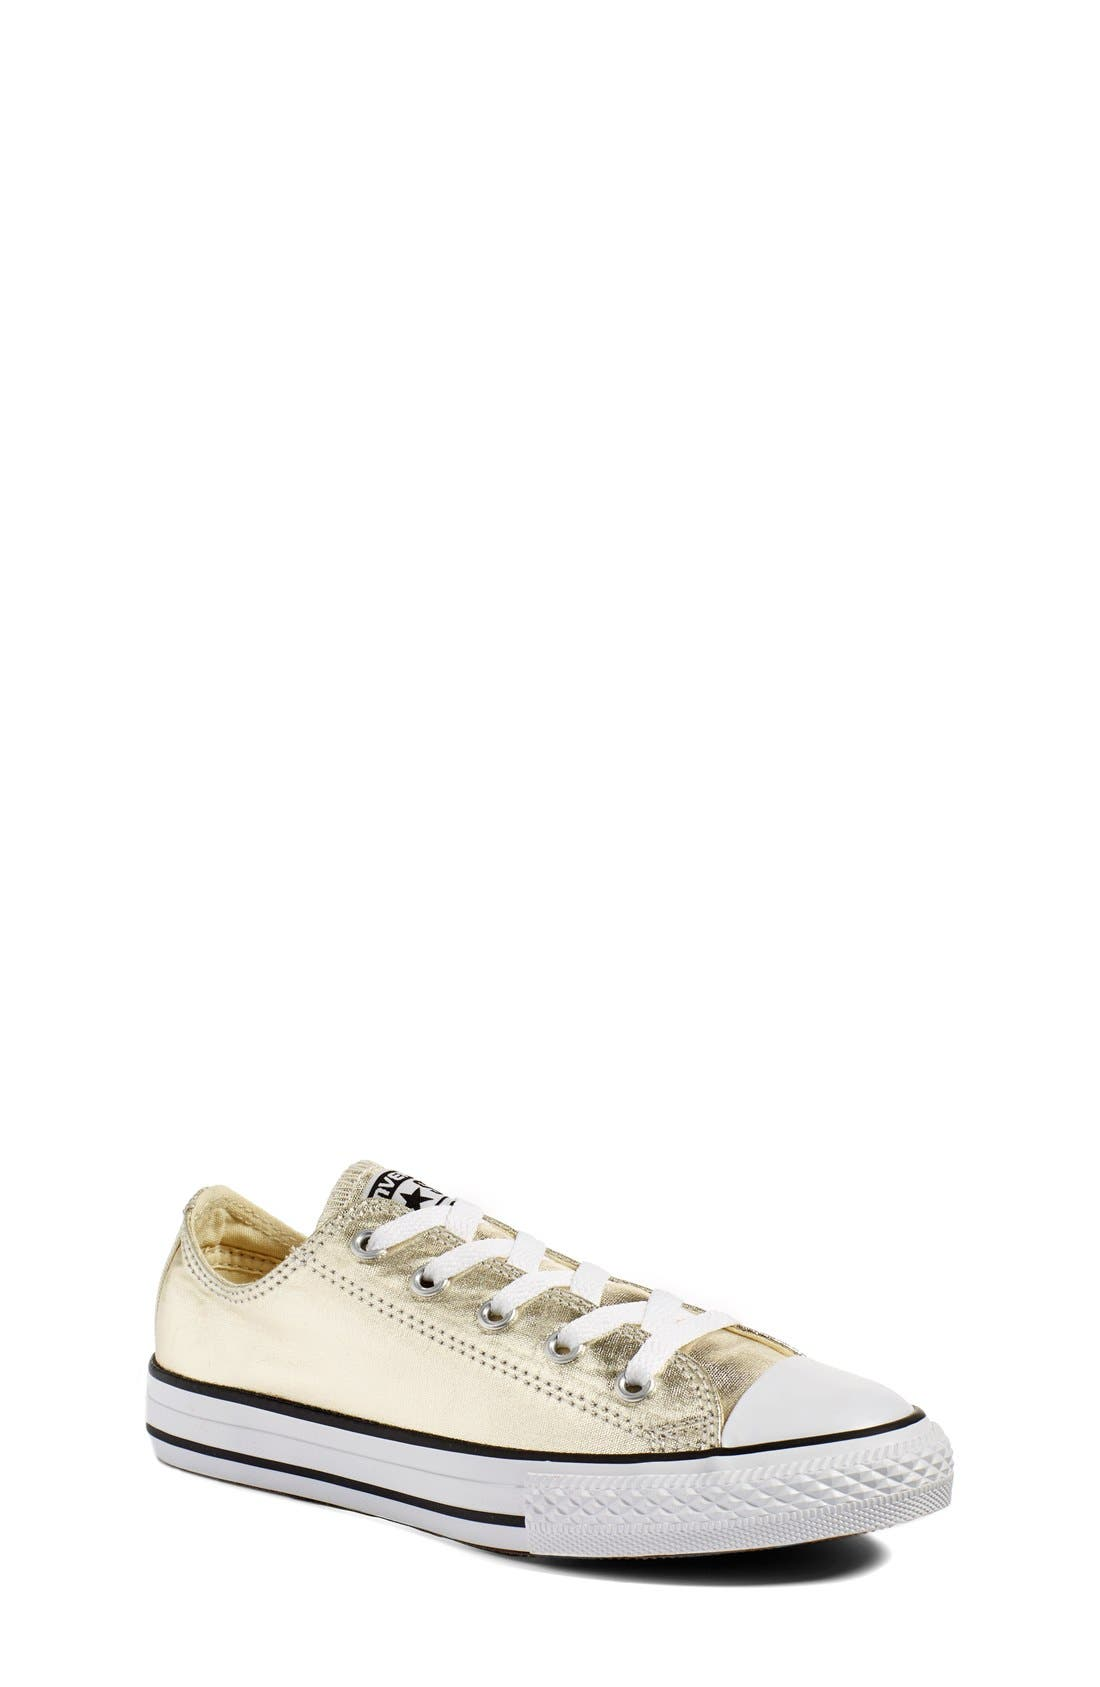 Chuck Taylor<sup>®</sup> All Star<sup>®</sup> Metallic Sneaker,                         Main,                         color, Light Gold/ White